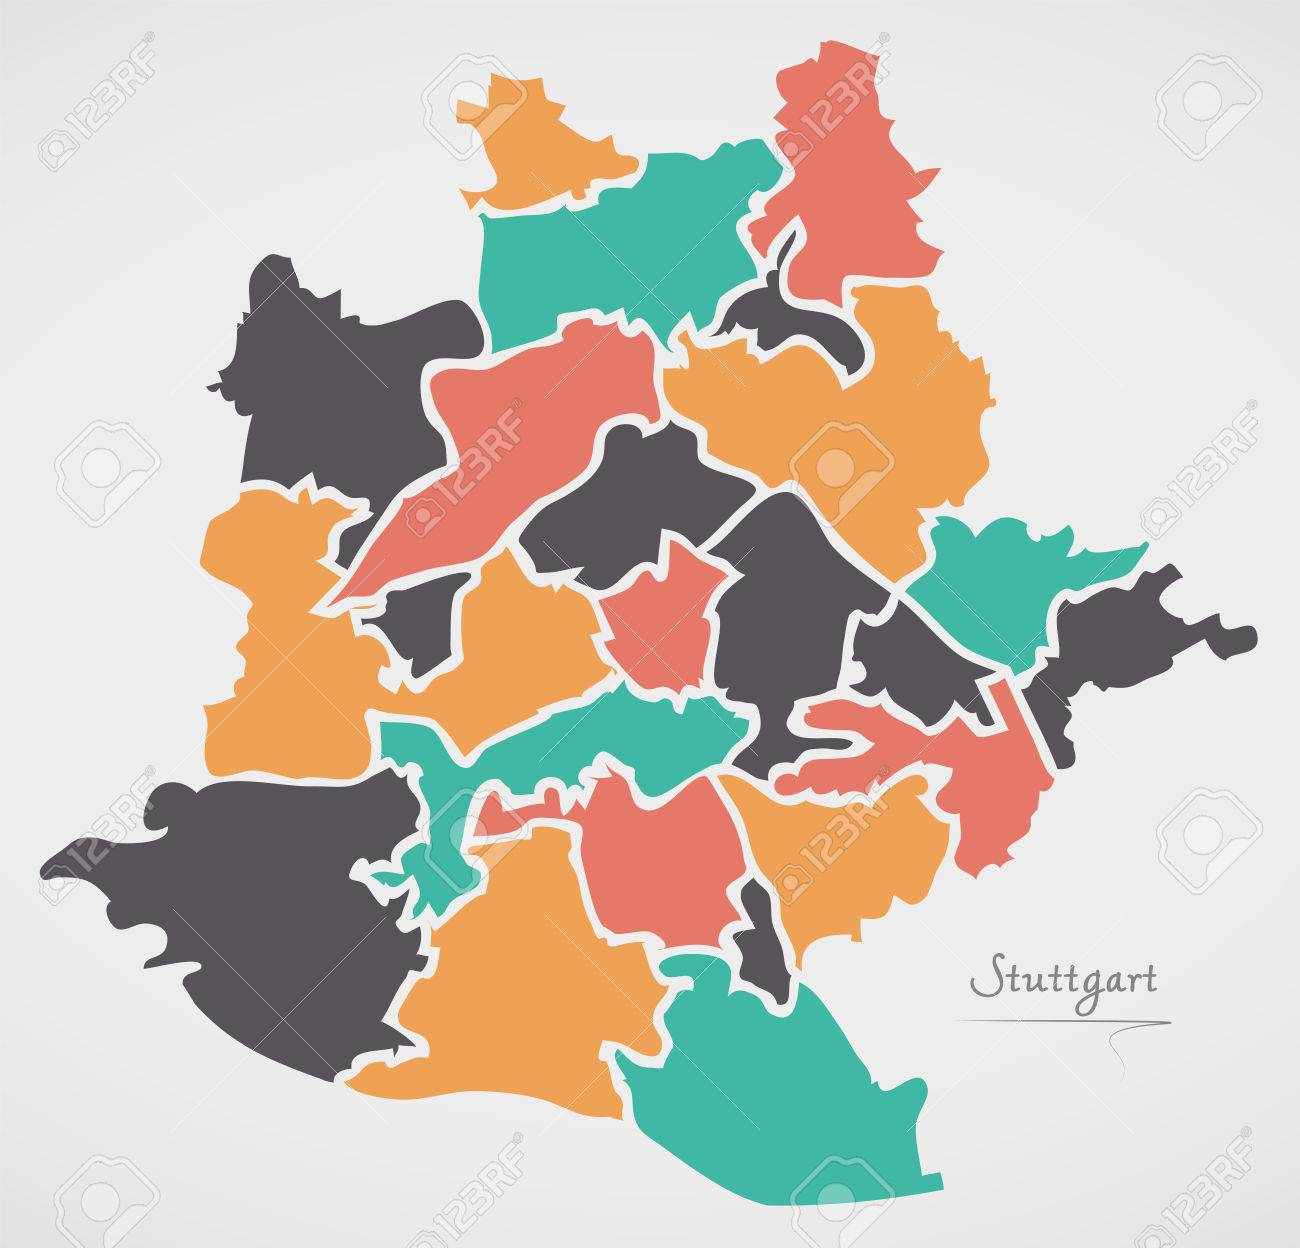 Stuttgart Map With Boroughs And Modern Round Shapes Royalty Free